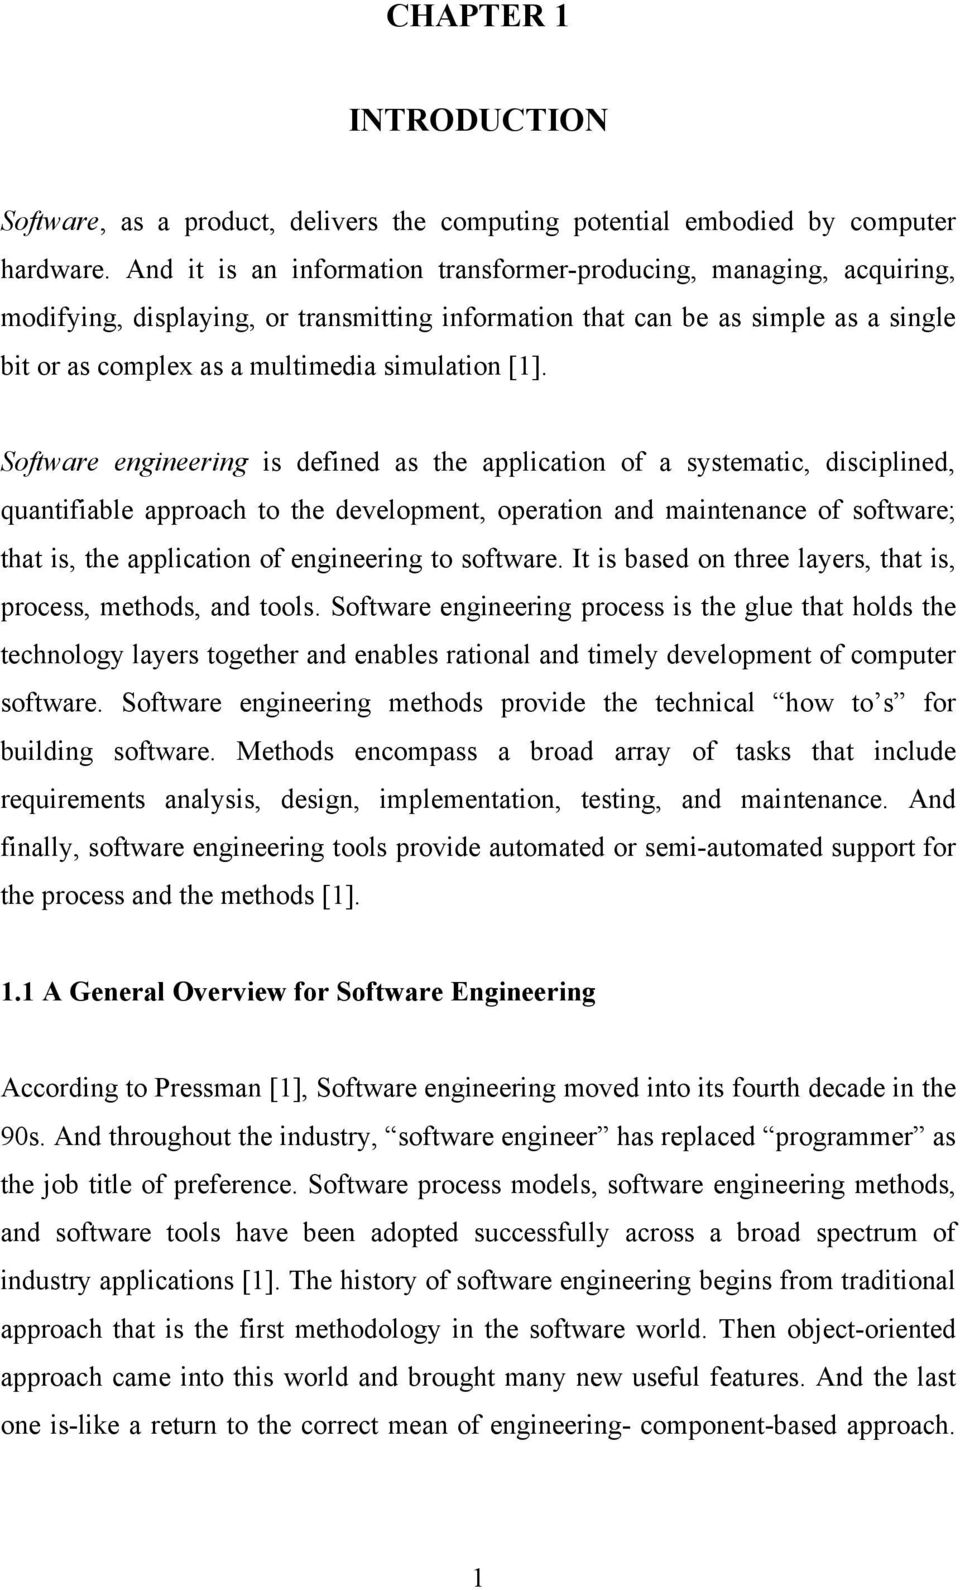 [1]. Software engineering is defined as the application of a systematic, disciplined, quantifiable approach to the development, operation and maintenance of software; that is, the application of